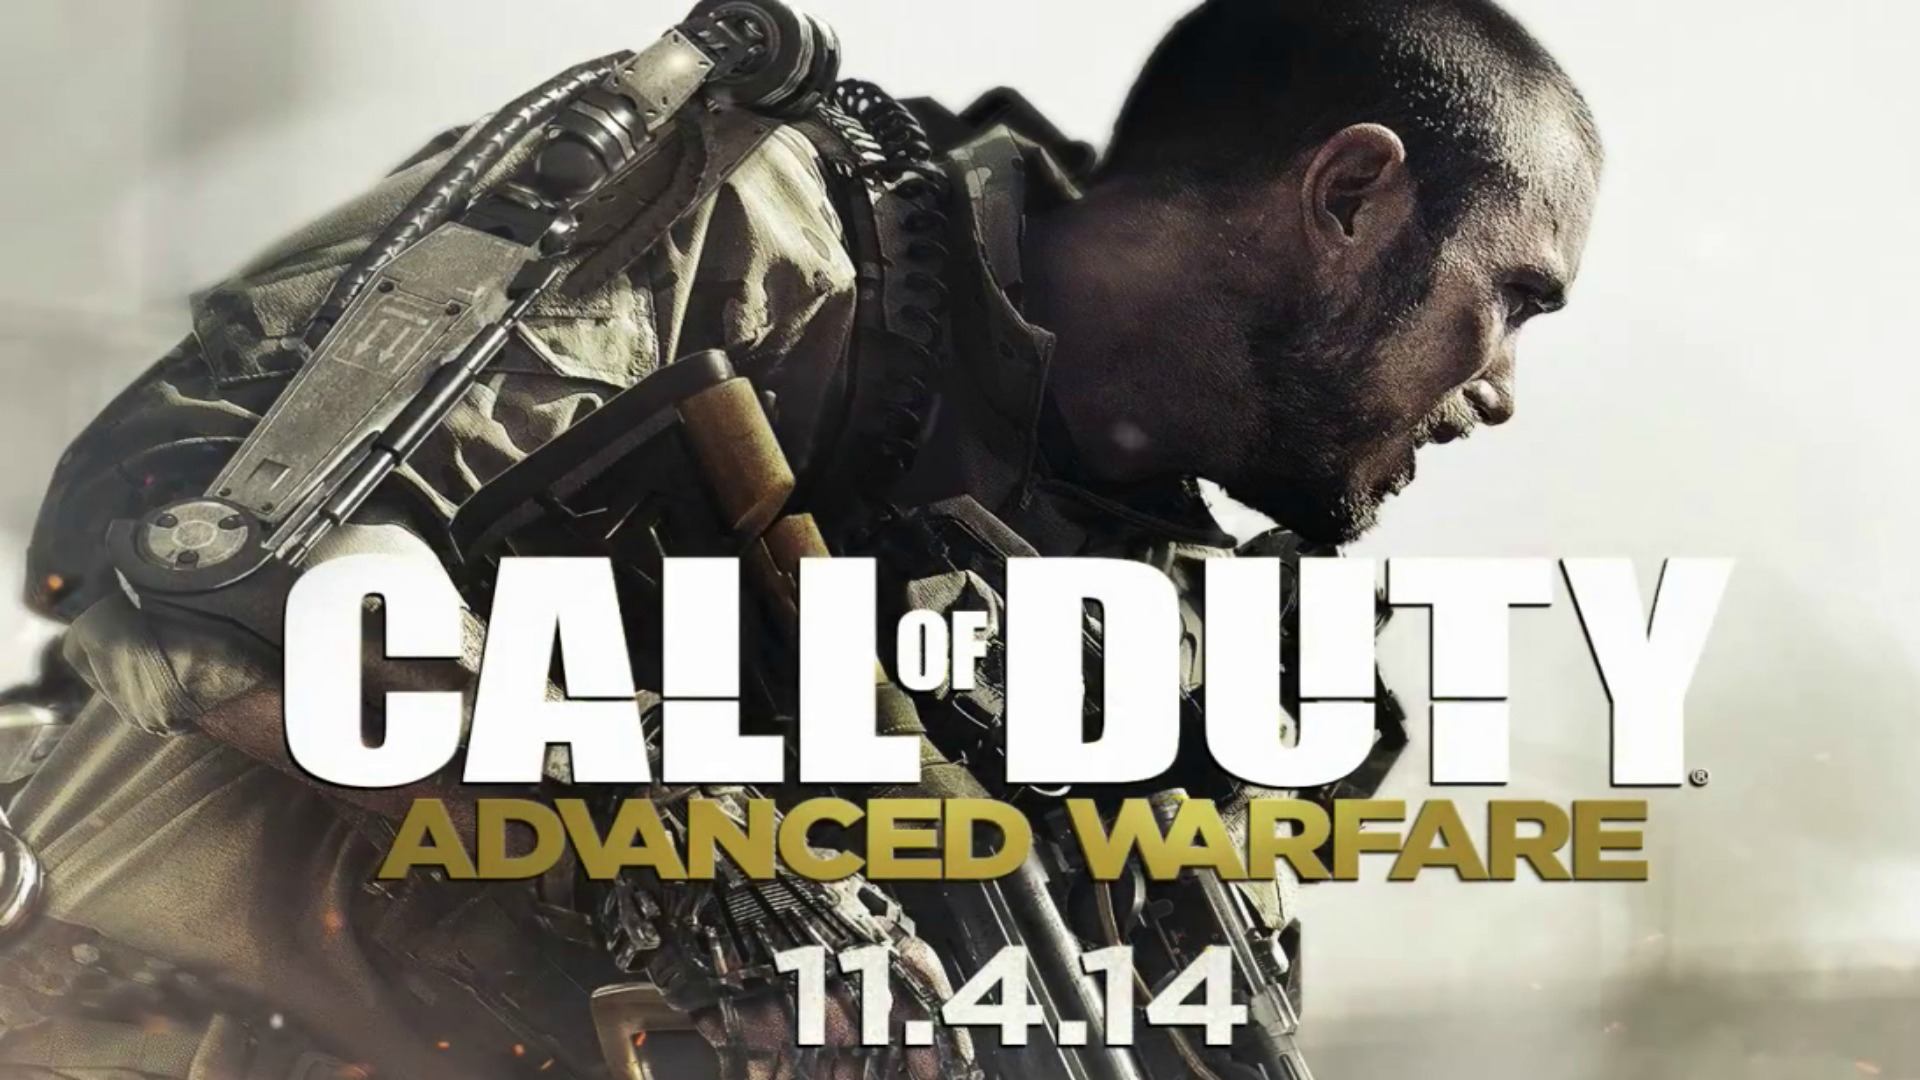 Call Of Duty Advanced Warfare Pre-Order Offers Early Game ...